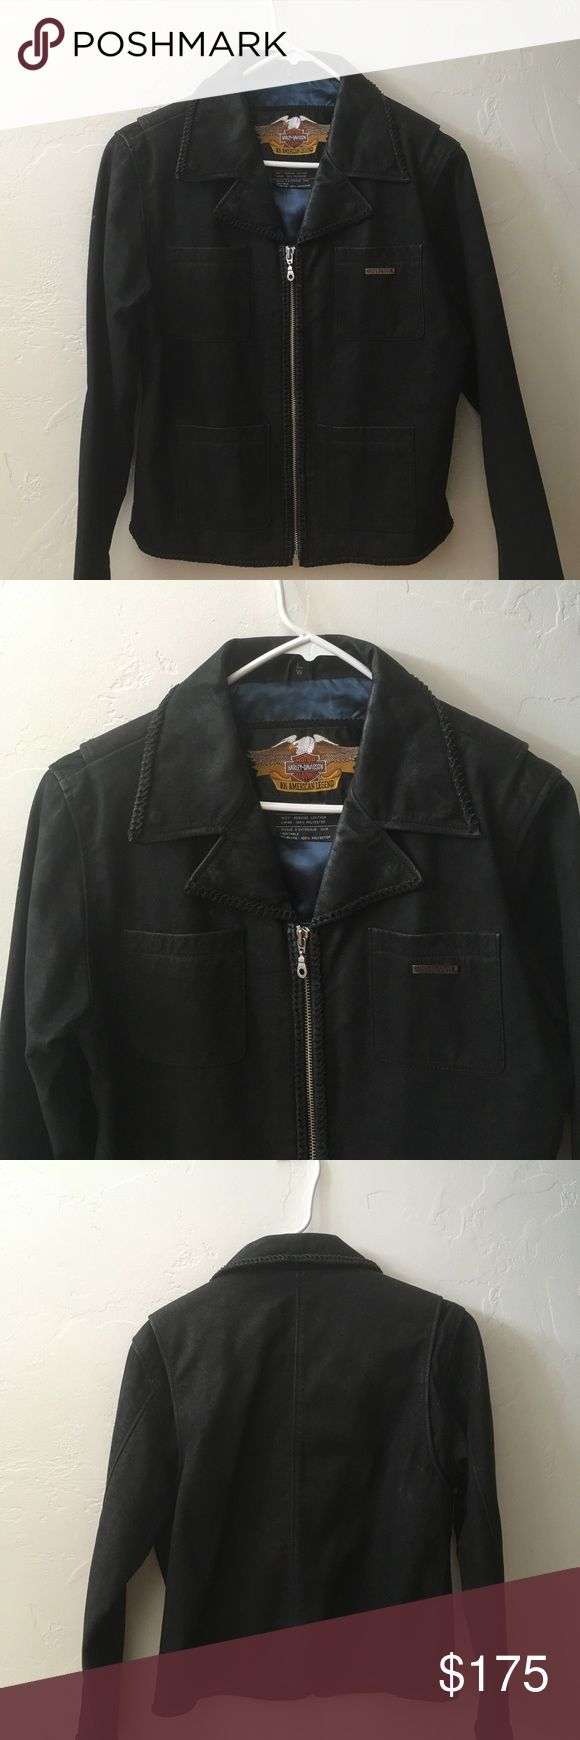 Harley Davidson Leather Jacket (Large) Harley Davidson Lightweight Leather Jacket (Size Large). Flattering Slim Fit, Zip-Up Front. Blue Satin Lining. Two Hidden Zippers Inside. Dry Clean Only. *Excellent Condition!! Harley-Davidson Jackets & Coats